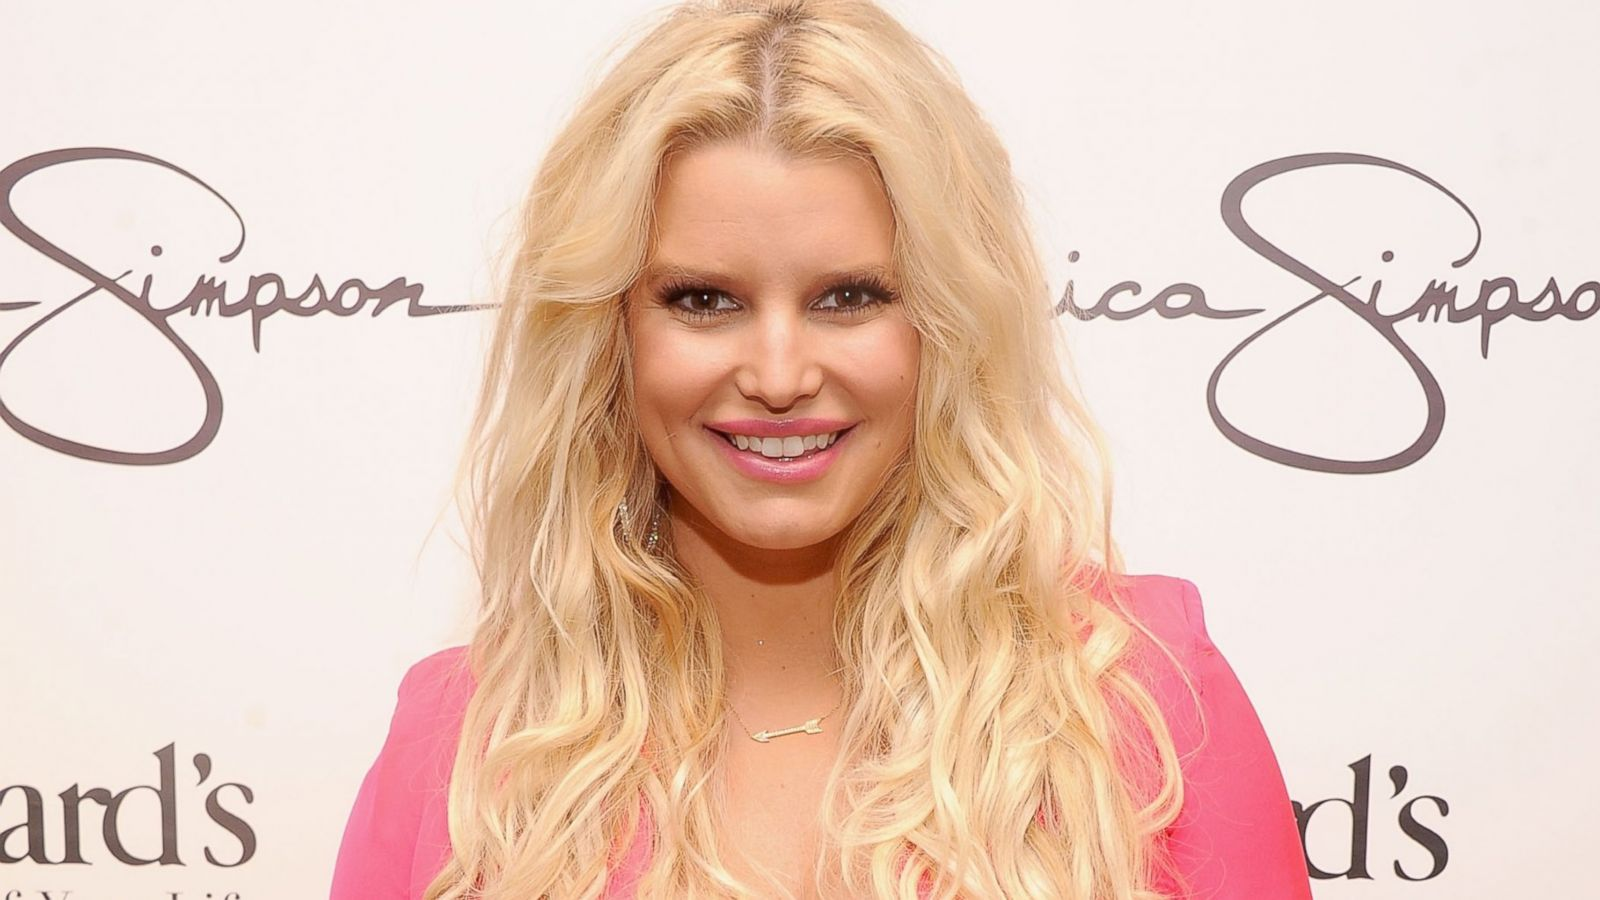 It's Out Here's How Jessica Simpson Lost 60 Pounds – Diet And Exercise Plan It's Out Here's How Jessica Simpson Lost 60 Pounds – Diet And Exercise Plan new pictures